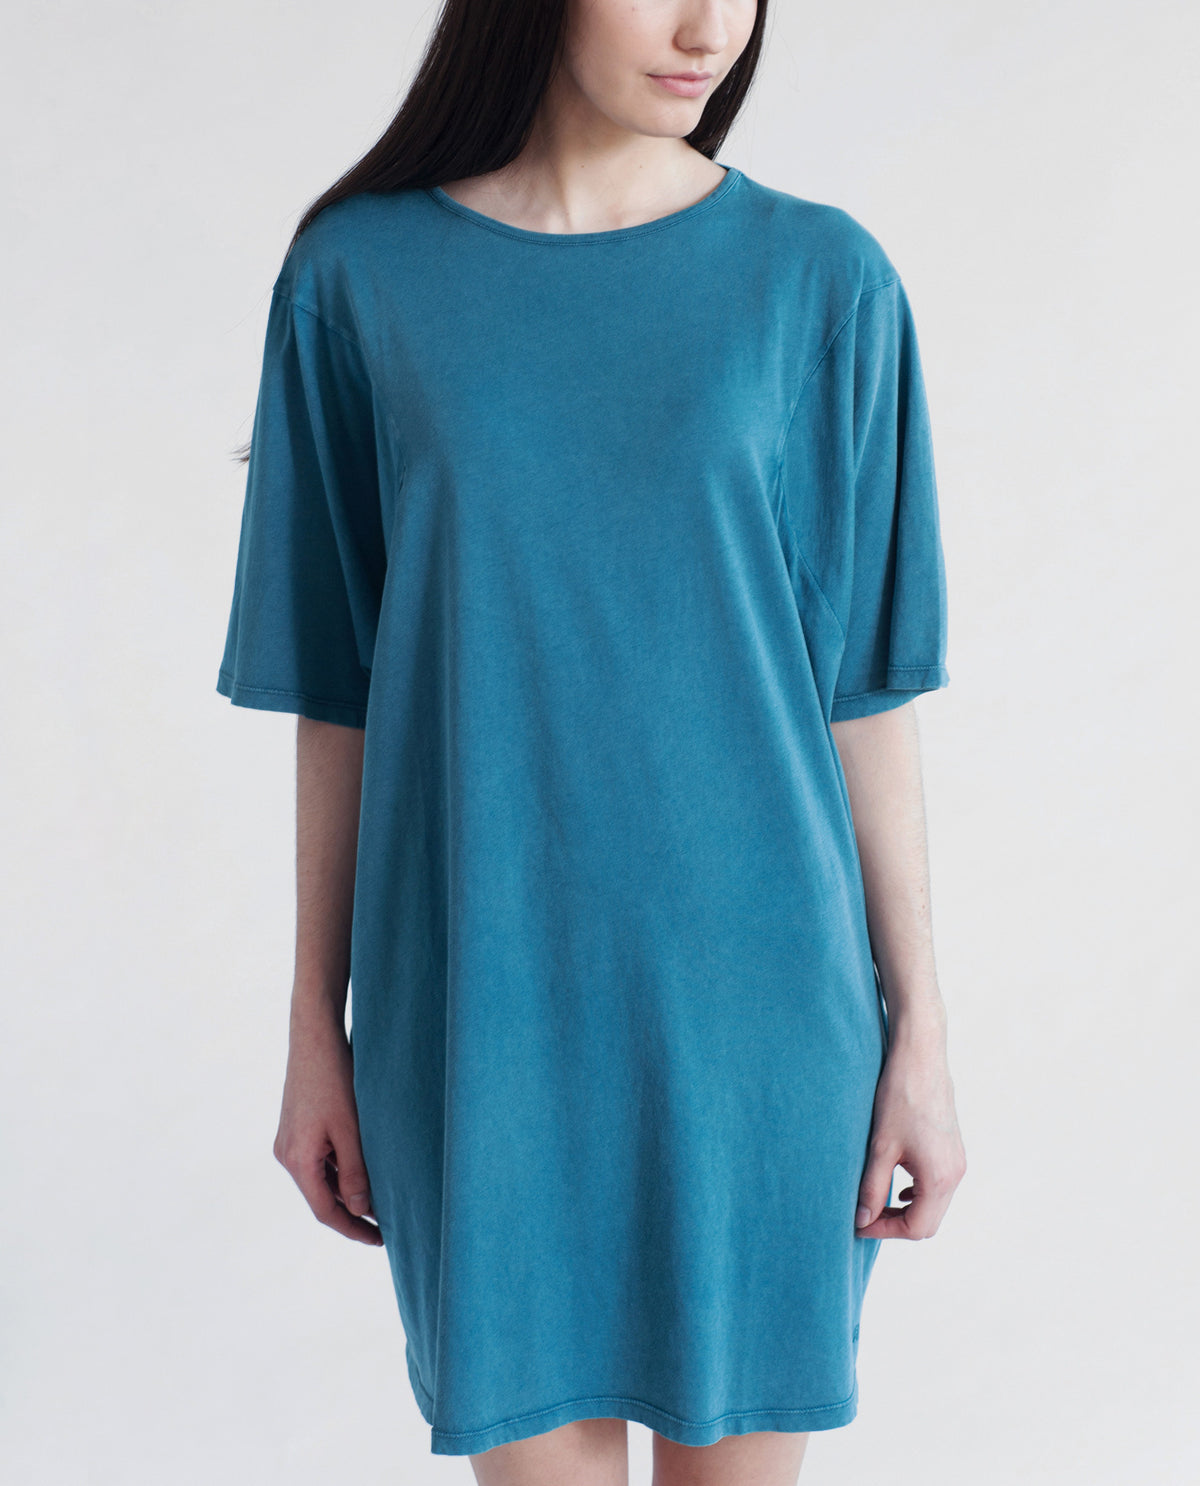 DAISY Organic Cotton Tshirt In Denim Blue